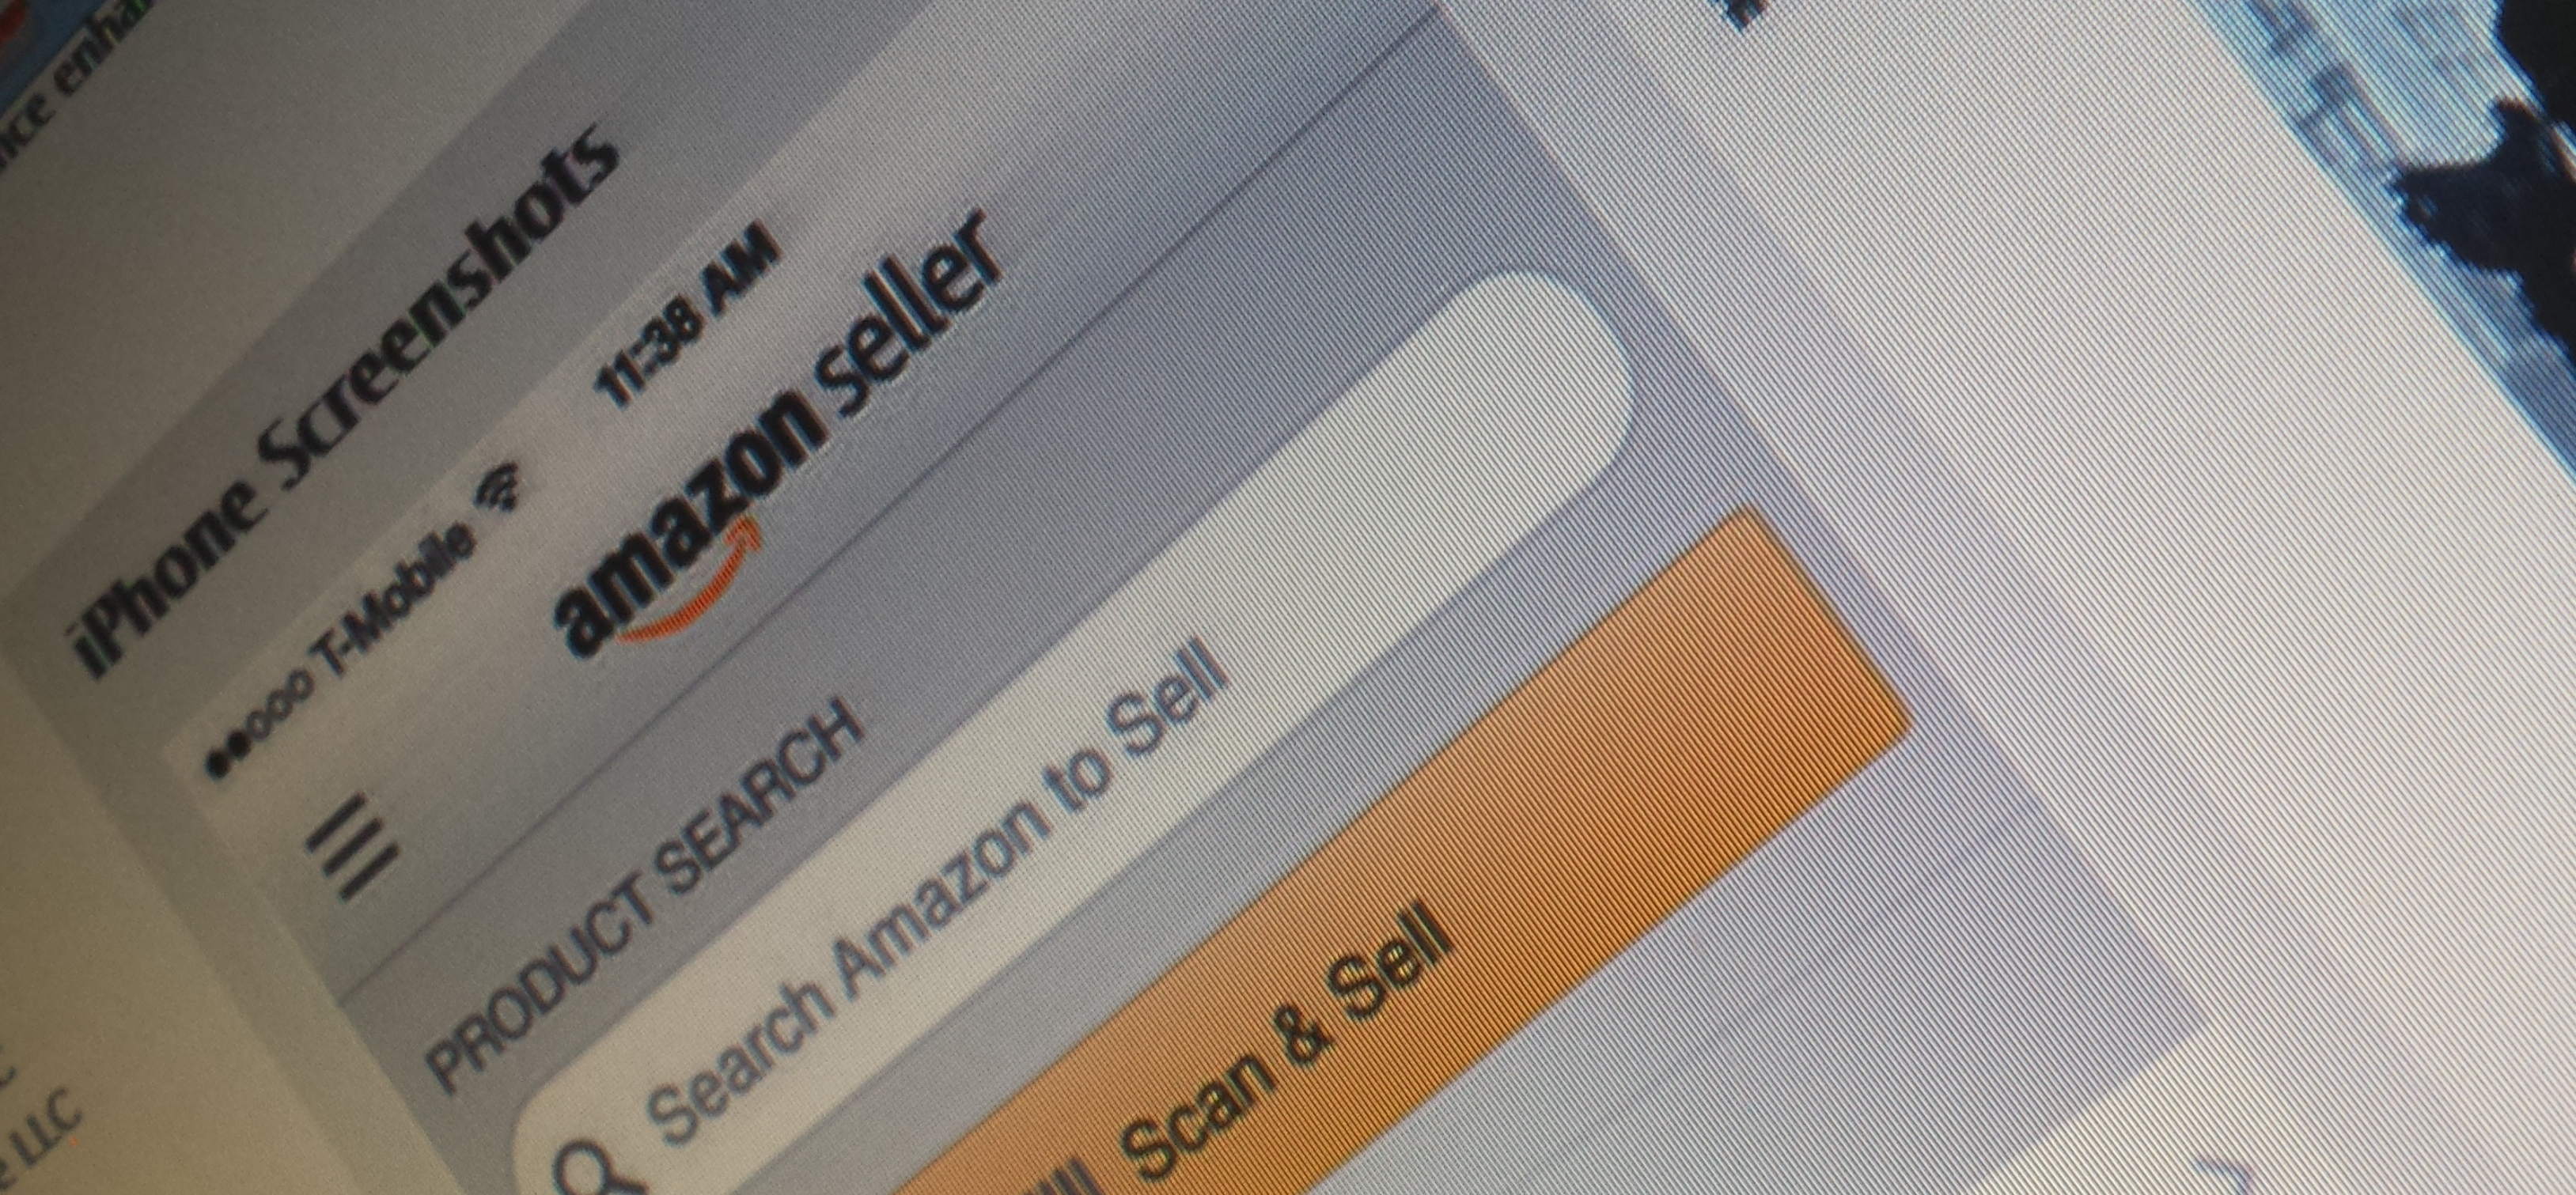 Amazon Seller App Helps You Sell on Amazon